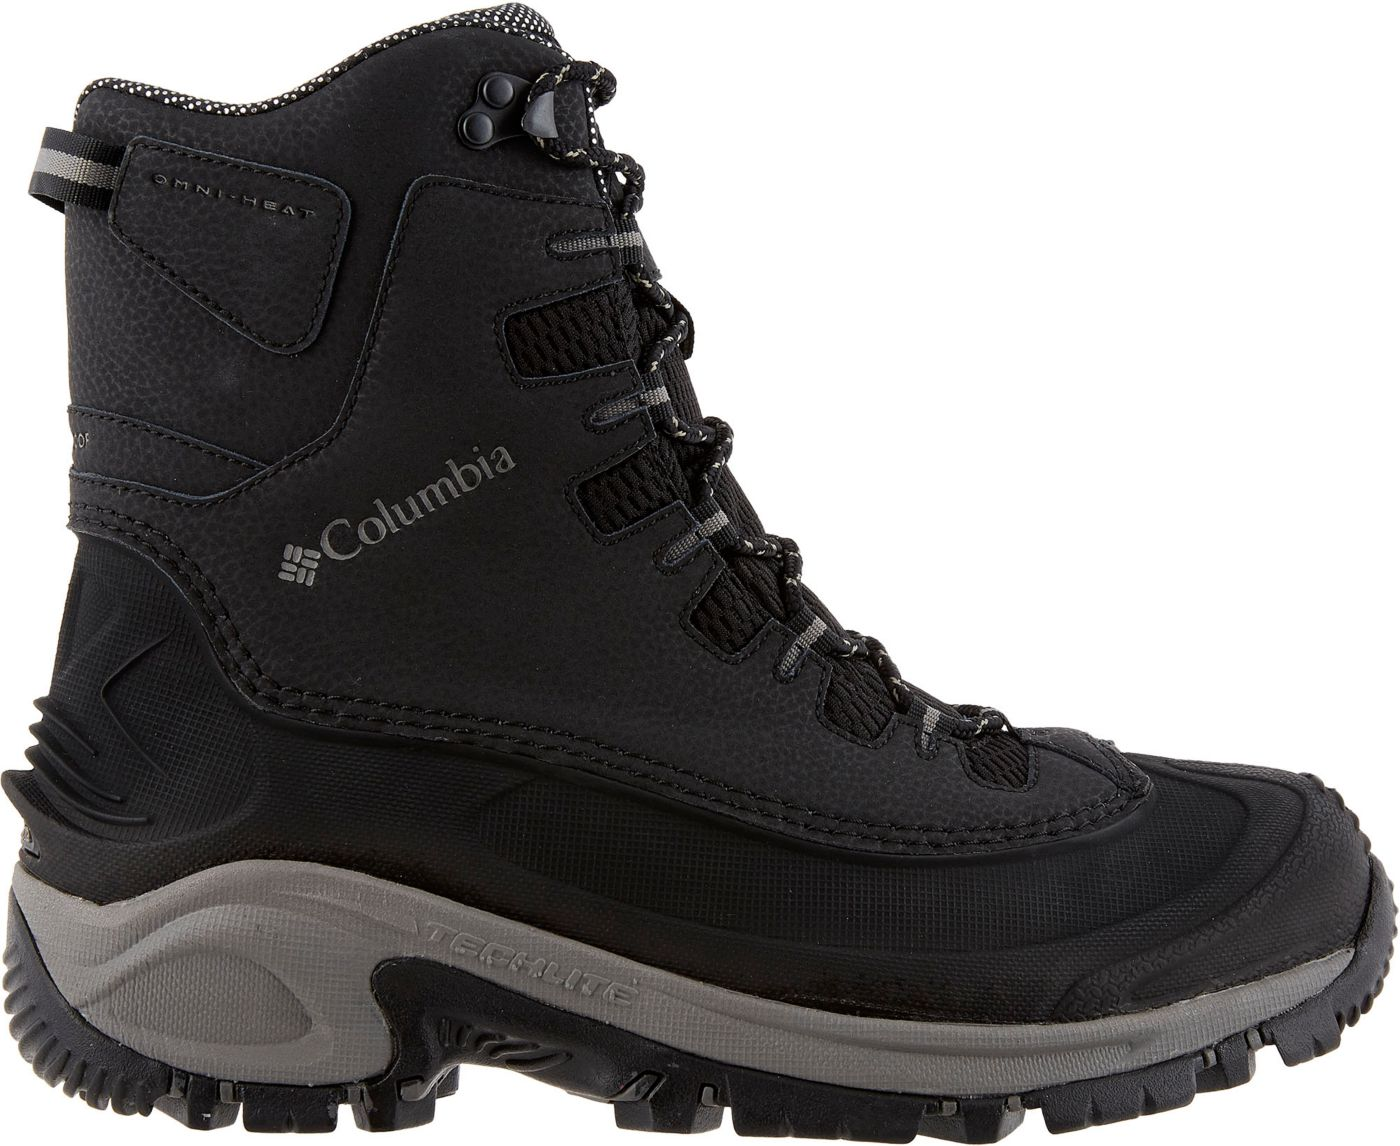 Columbia Men's Bugaboot II Omni-Heat 200g Waterproof Winter Boots